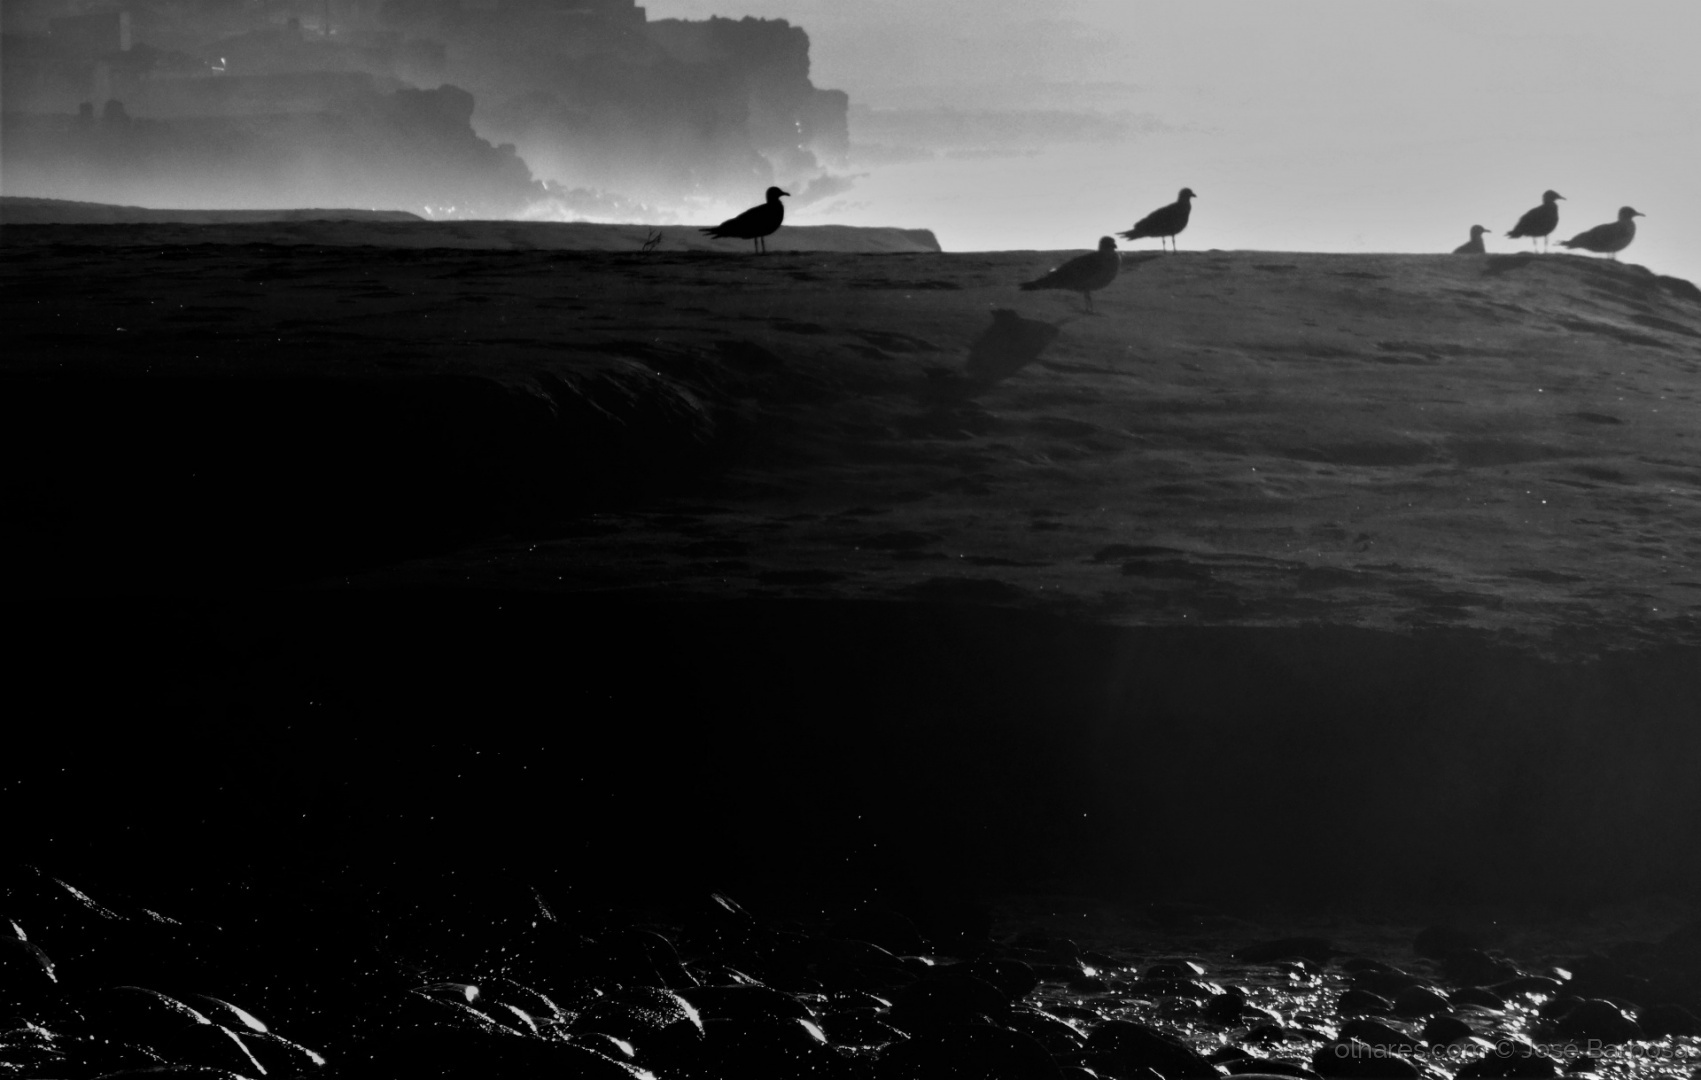 Animais/Feel and listen the sound of the birds and the sea